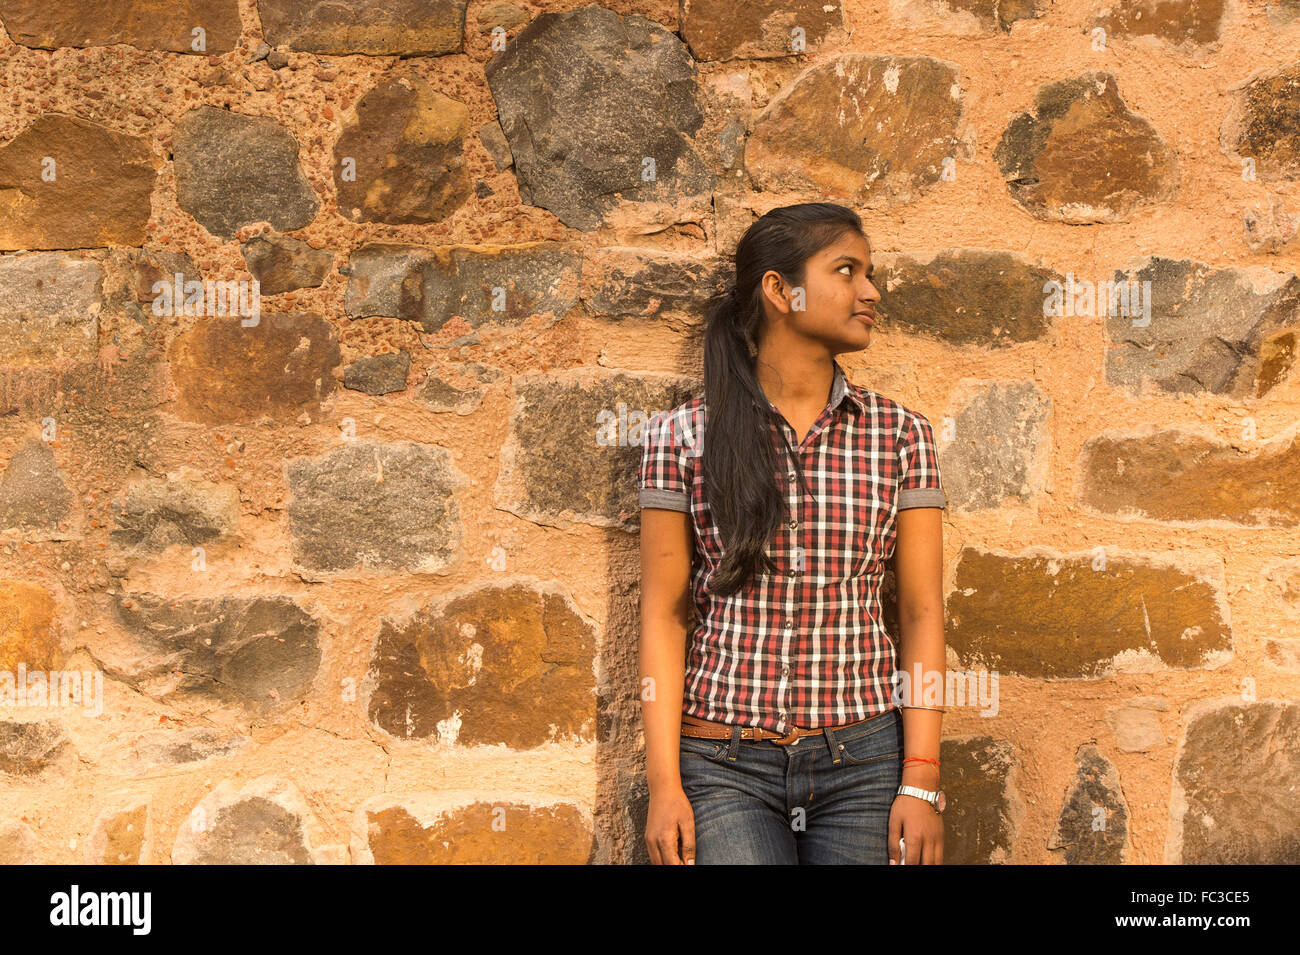 A local women standint at the wall of Ancient underground step-well (Ugrasen ki Baoli) in Delhi. India. - Stock Image